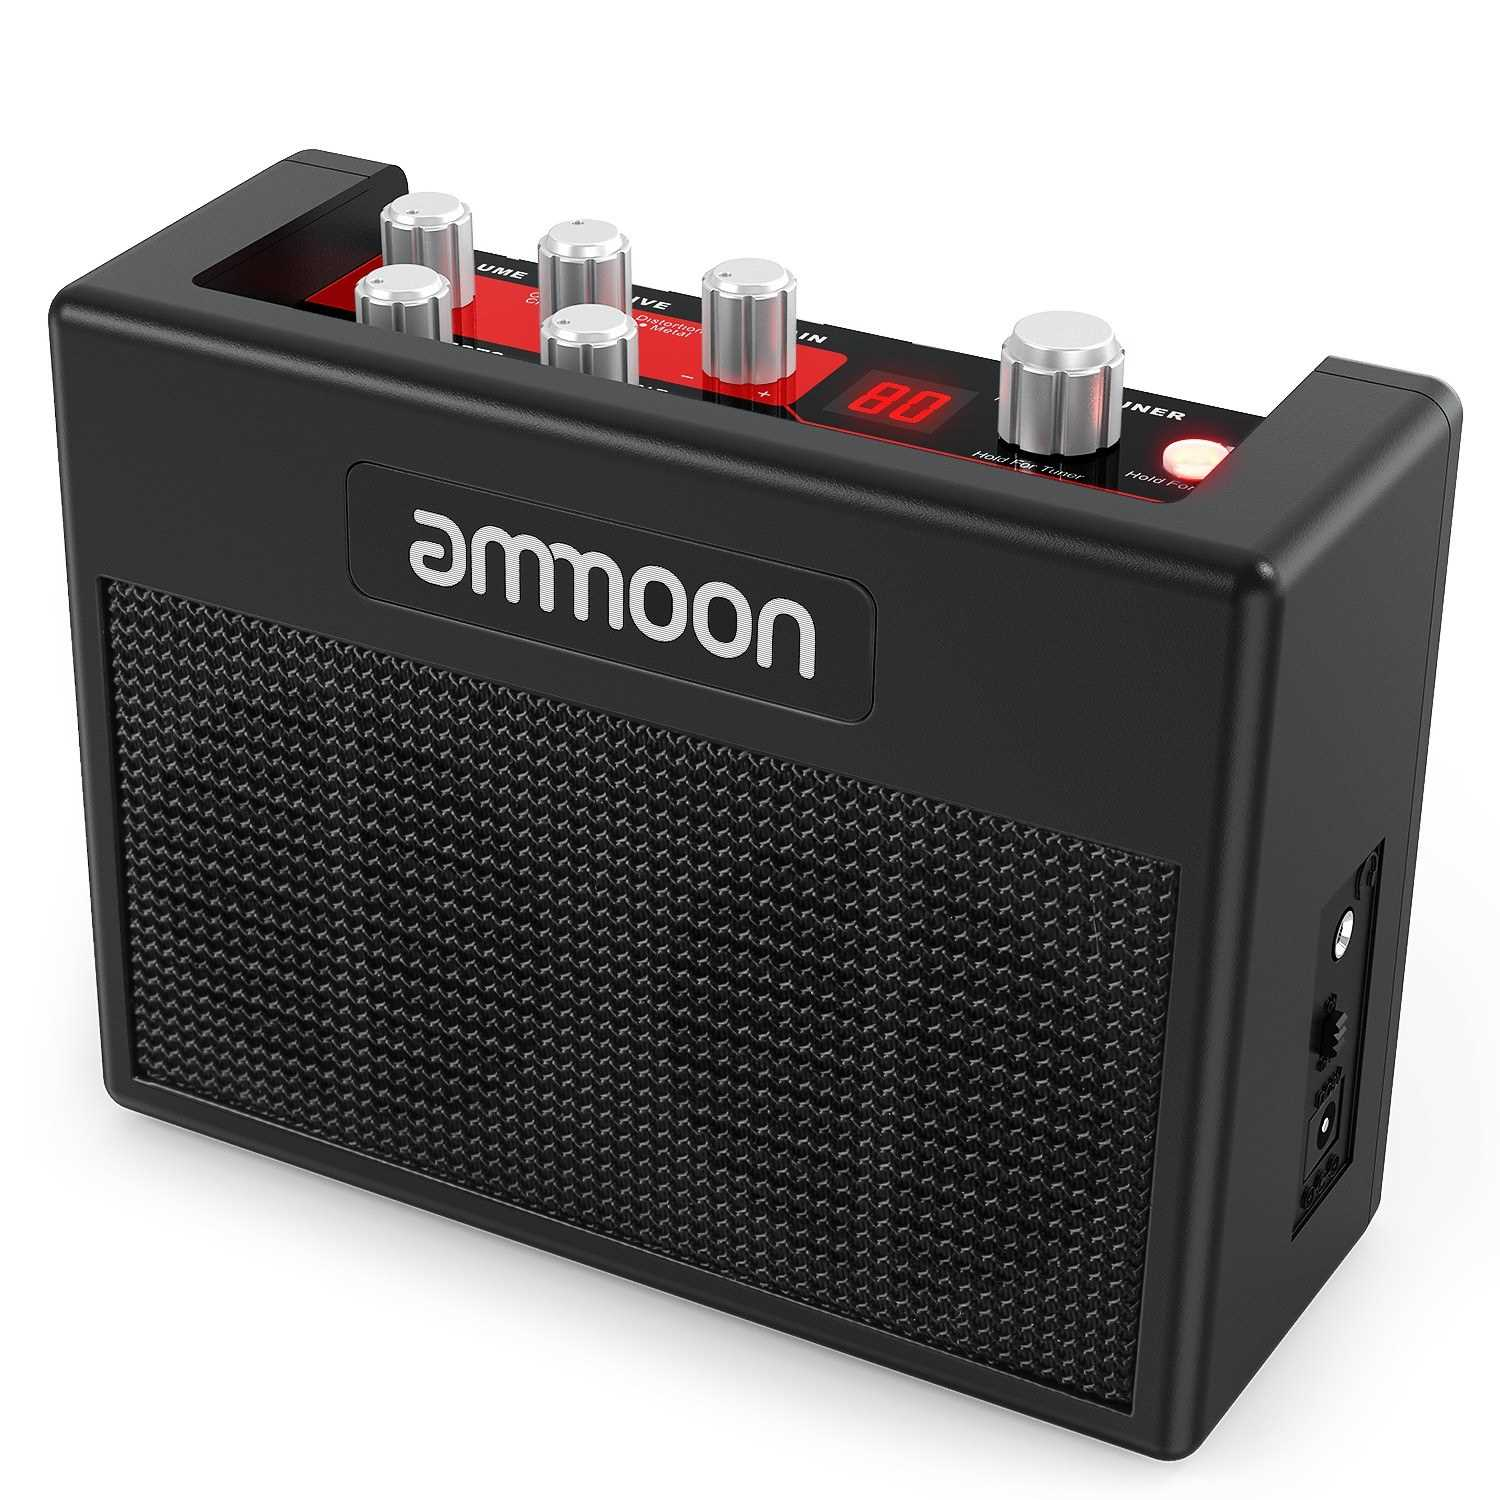 [ MEG.CQ ] ammoon POCKAMP Portable Guitar Amplifier Amp Built-in Multi-effects 80 Drum Rhythms Support Tuner Tap Tempo Functions with Aux Input Headphone Output, Power adapter included (Eu) Malaysia